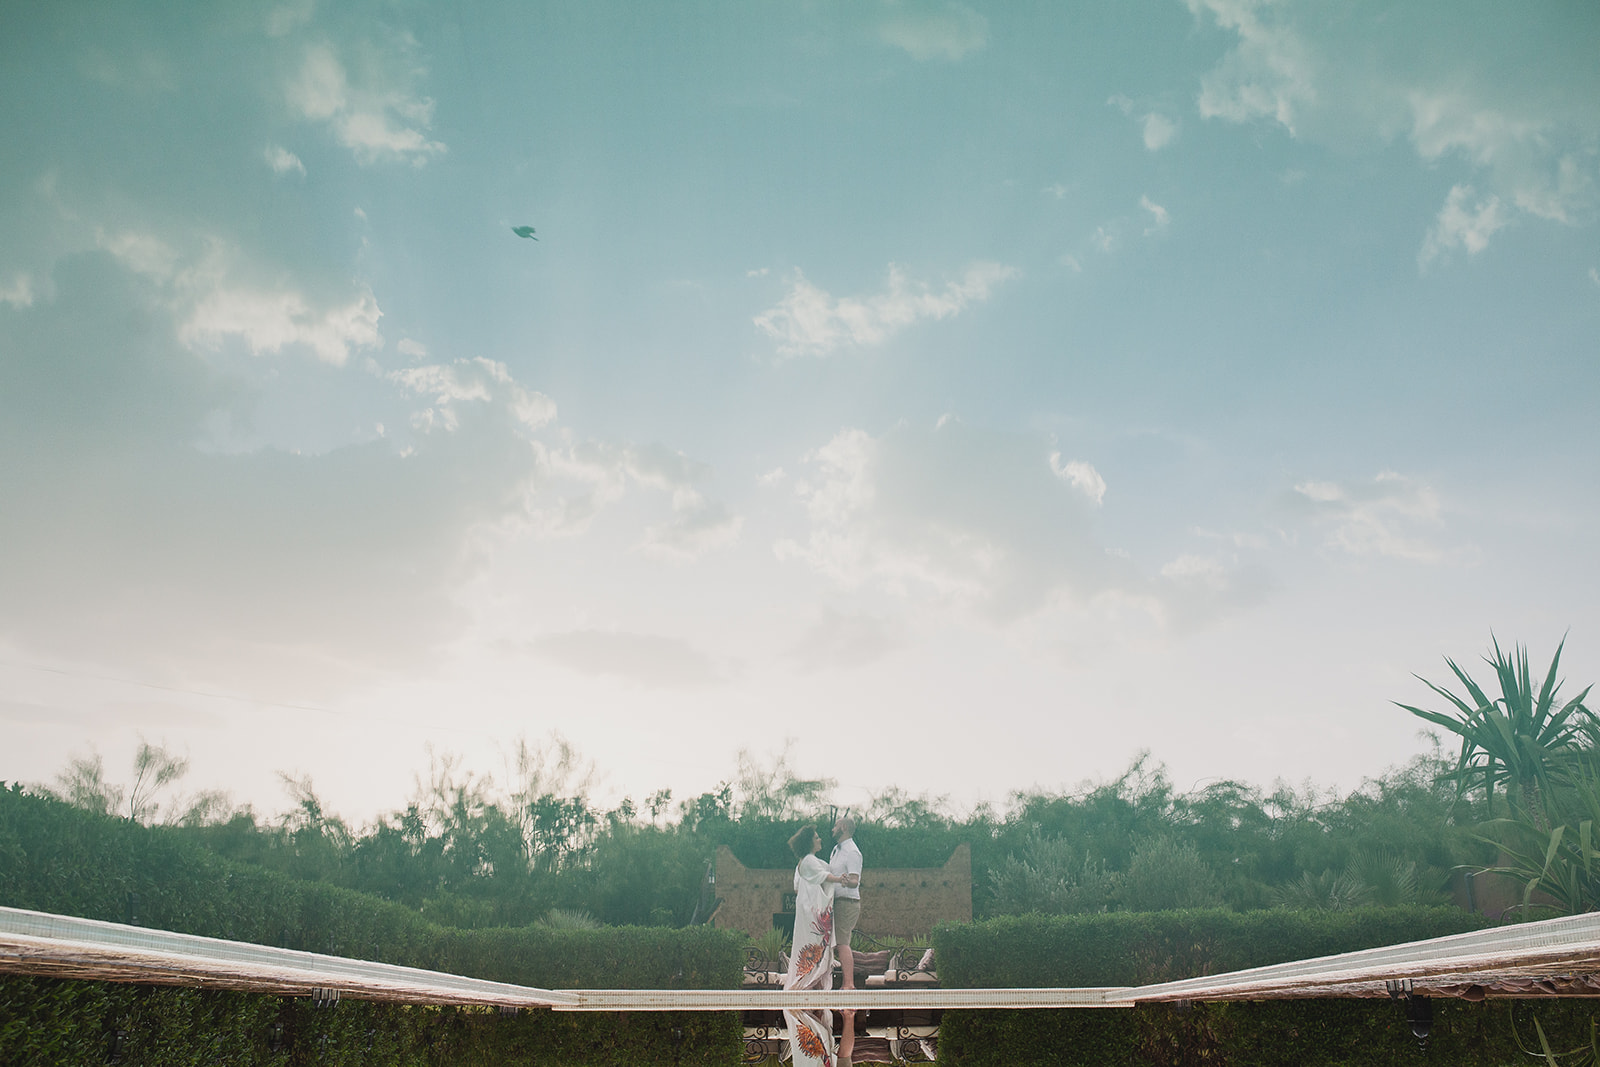 a bride and groom's reflection in the pool. fawakay villas marrakech wedding morrocco wedding photography. stop motion wedding films uk